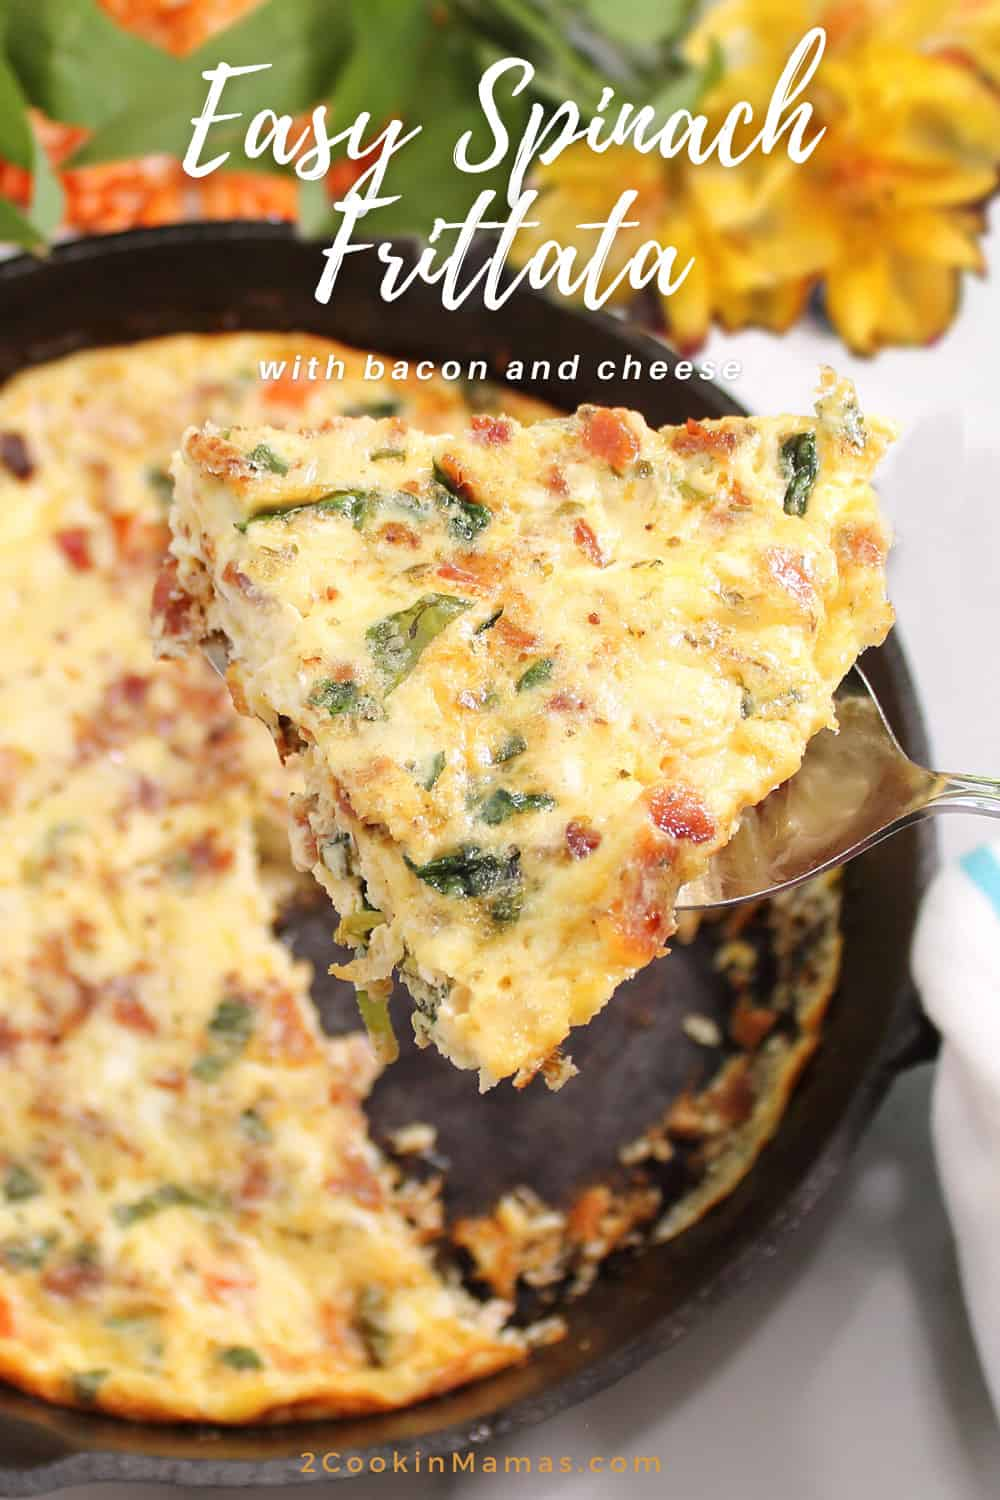 Easy Spinach Frittata with Bacon and Cheese